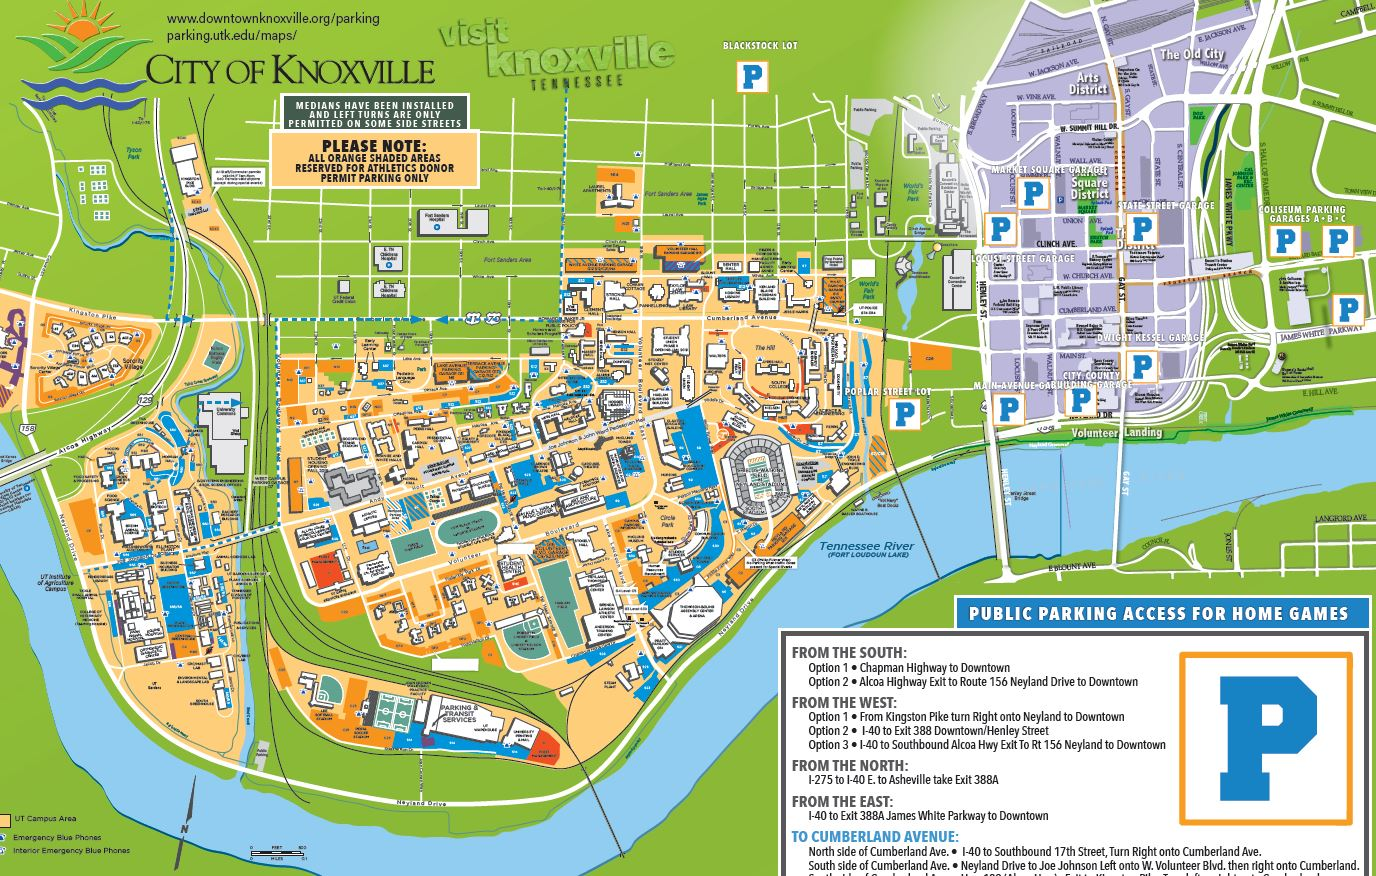 Maps | Visit Knoxville Knoxville Tn On Us Map on knoxville state map, knoxville al on us map, lenoir city tn on us map, city of knoxville tn map, knoxville tn county map, knoxville tennessee highway map, knoxville tn and surrounding towns, knoxville tennessee on a map, kingsport tn on us map, gatlinburg tn on us map, knoxville tn map with surrounding counties, north hills pittsburgh neighborhood map, knoxville tn area map, maynardville tn map, east tn map, knoxville weather map, knoxville tenn map, knoxville tennessee map with cities, powell tn map, knoxville airport map,